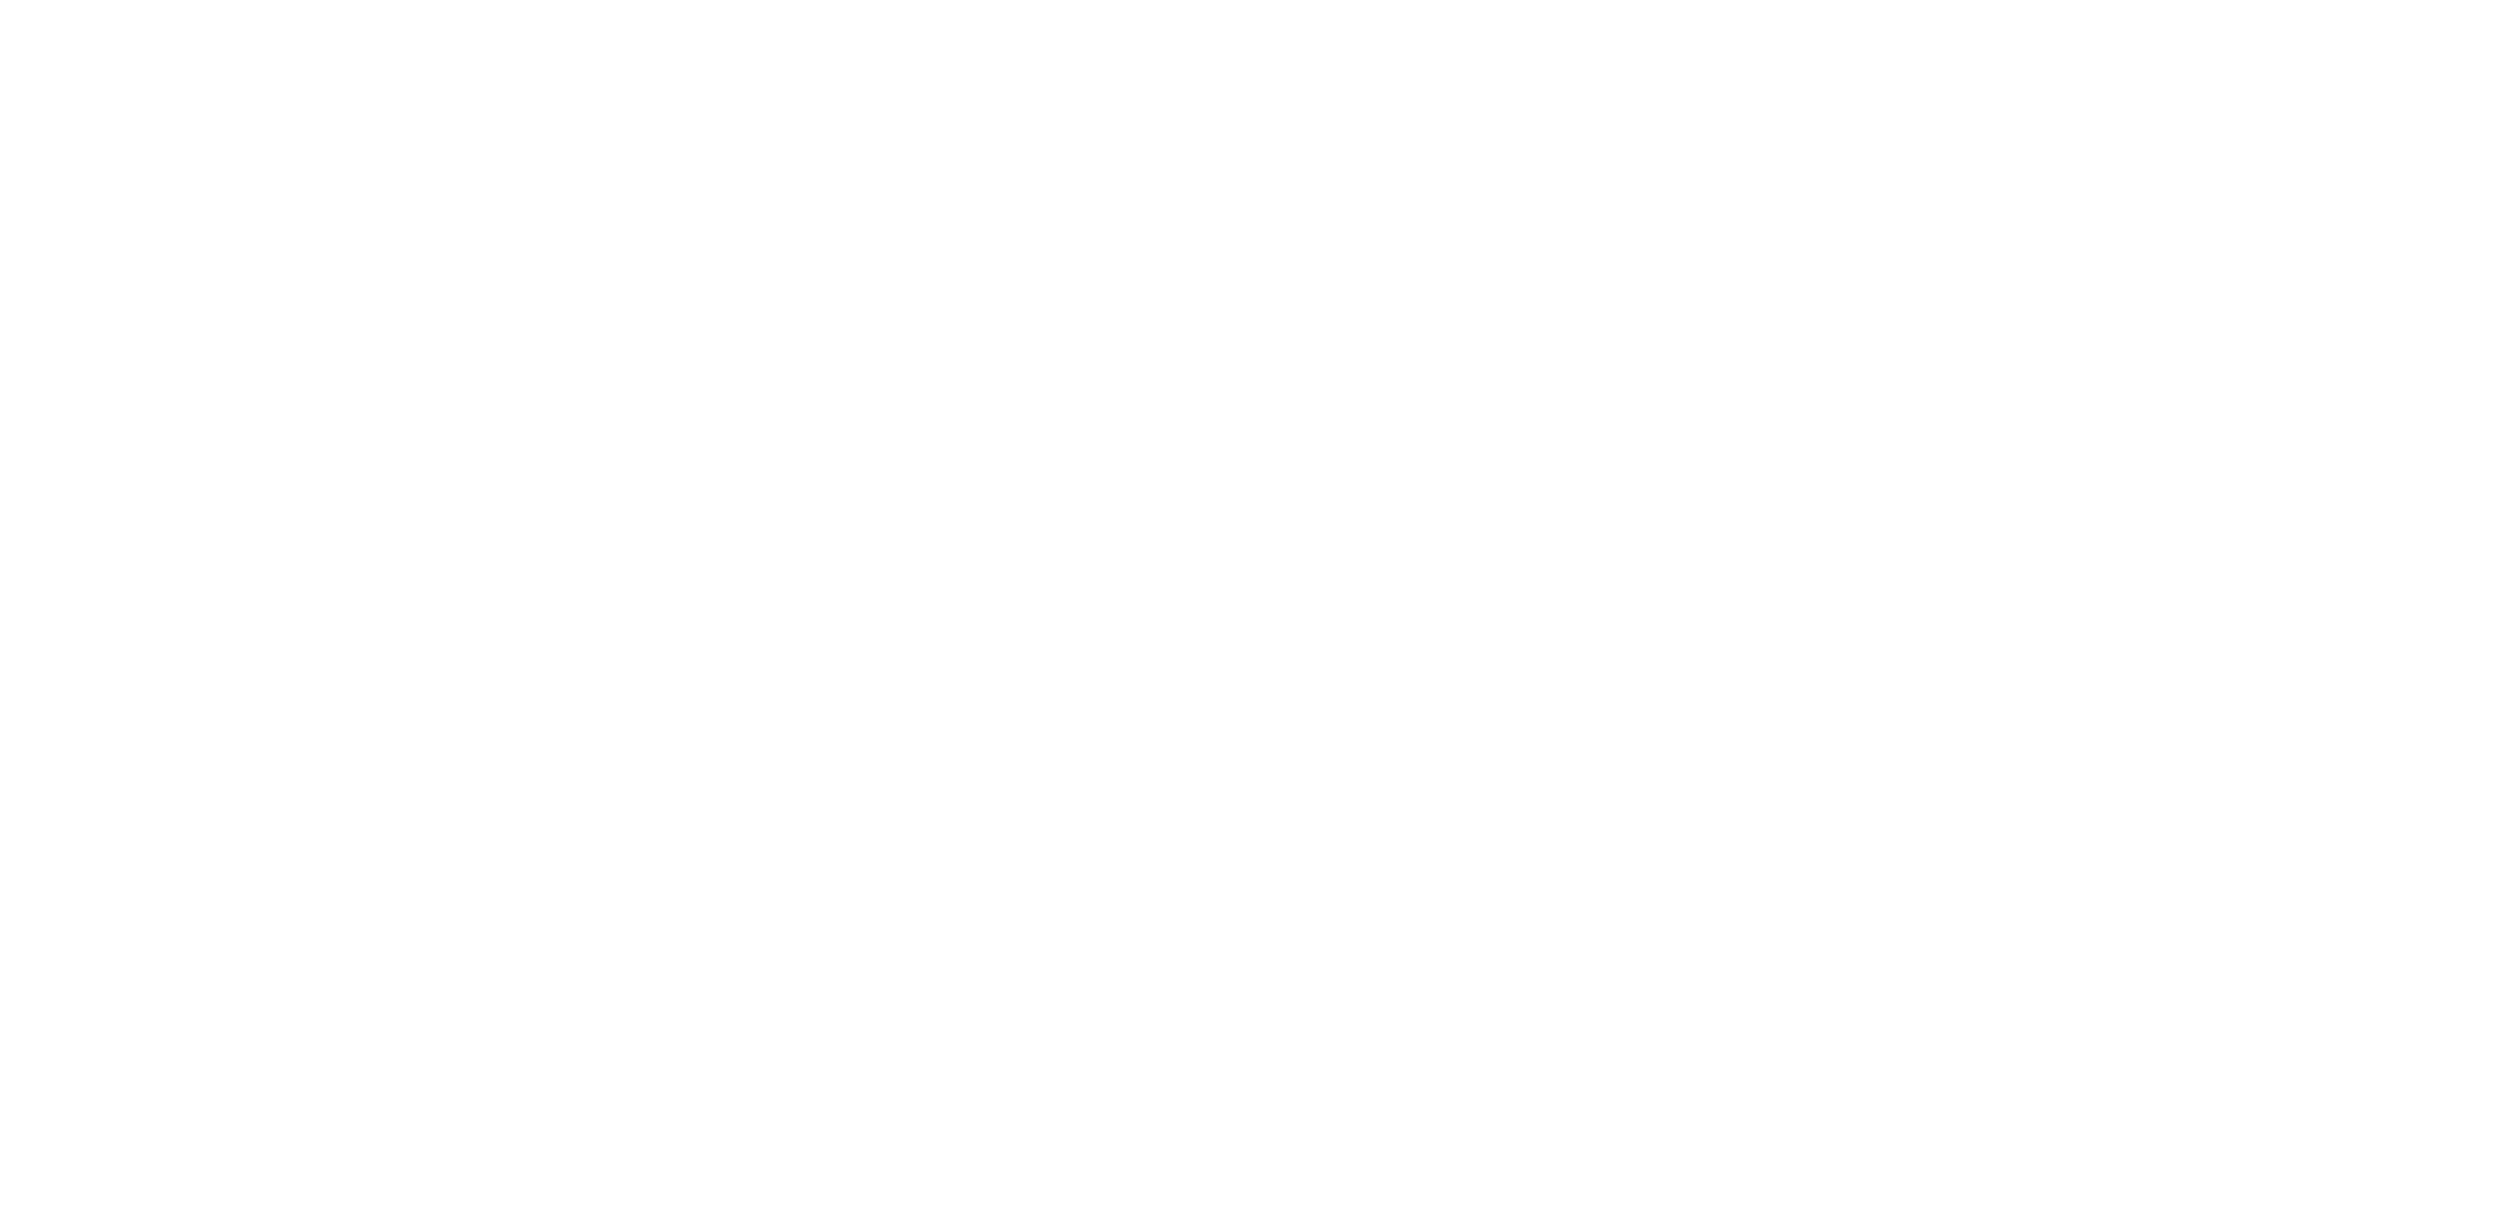 Day School-05.png